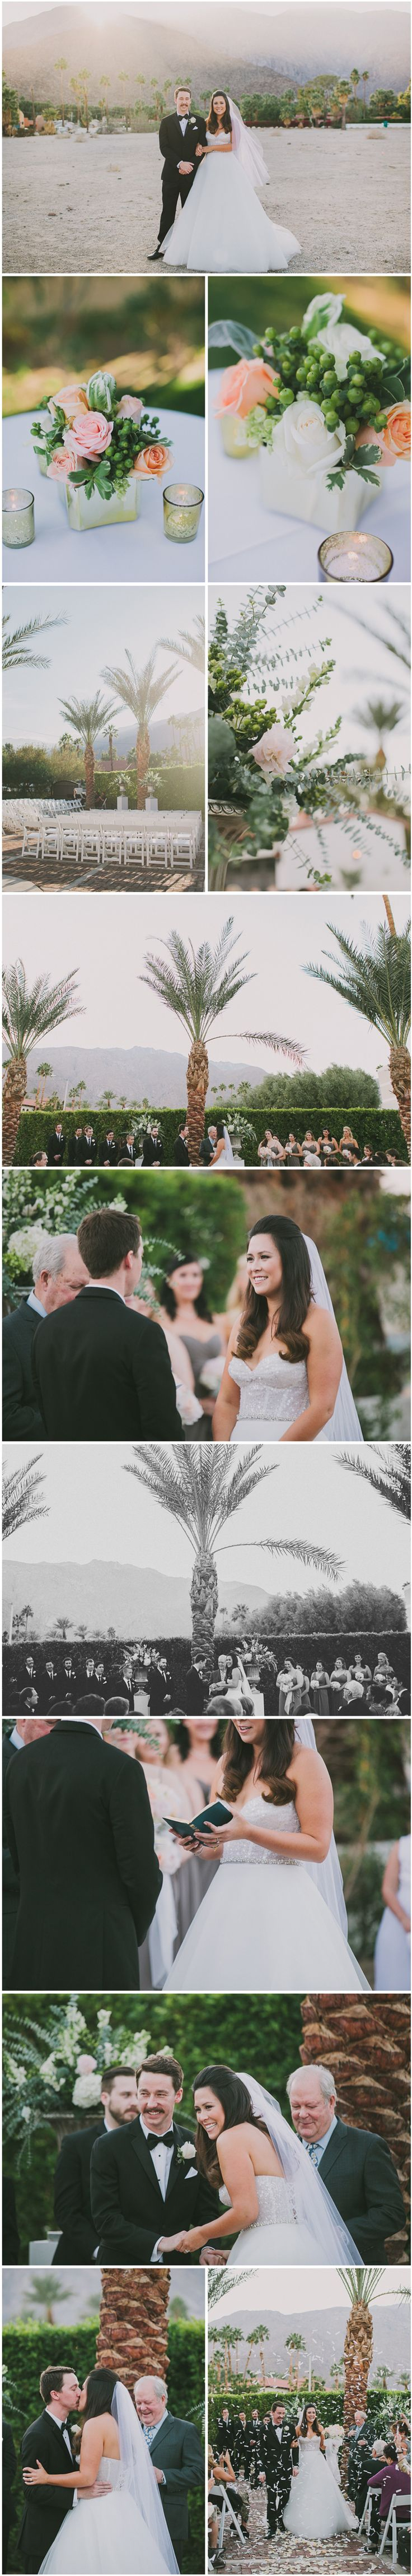 Sarah + Ben Charles Farrell Compound Estate Palm Springs Wedding 3